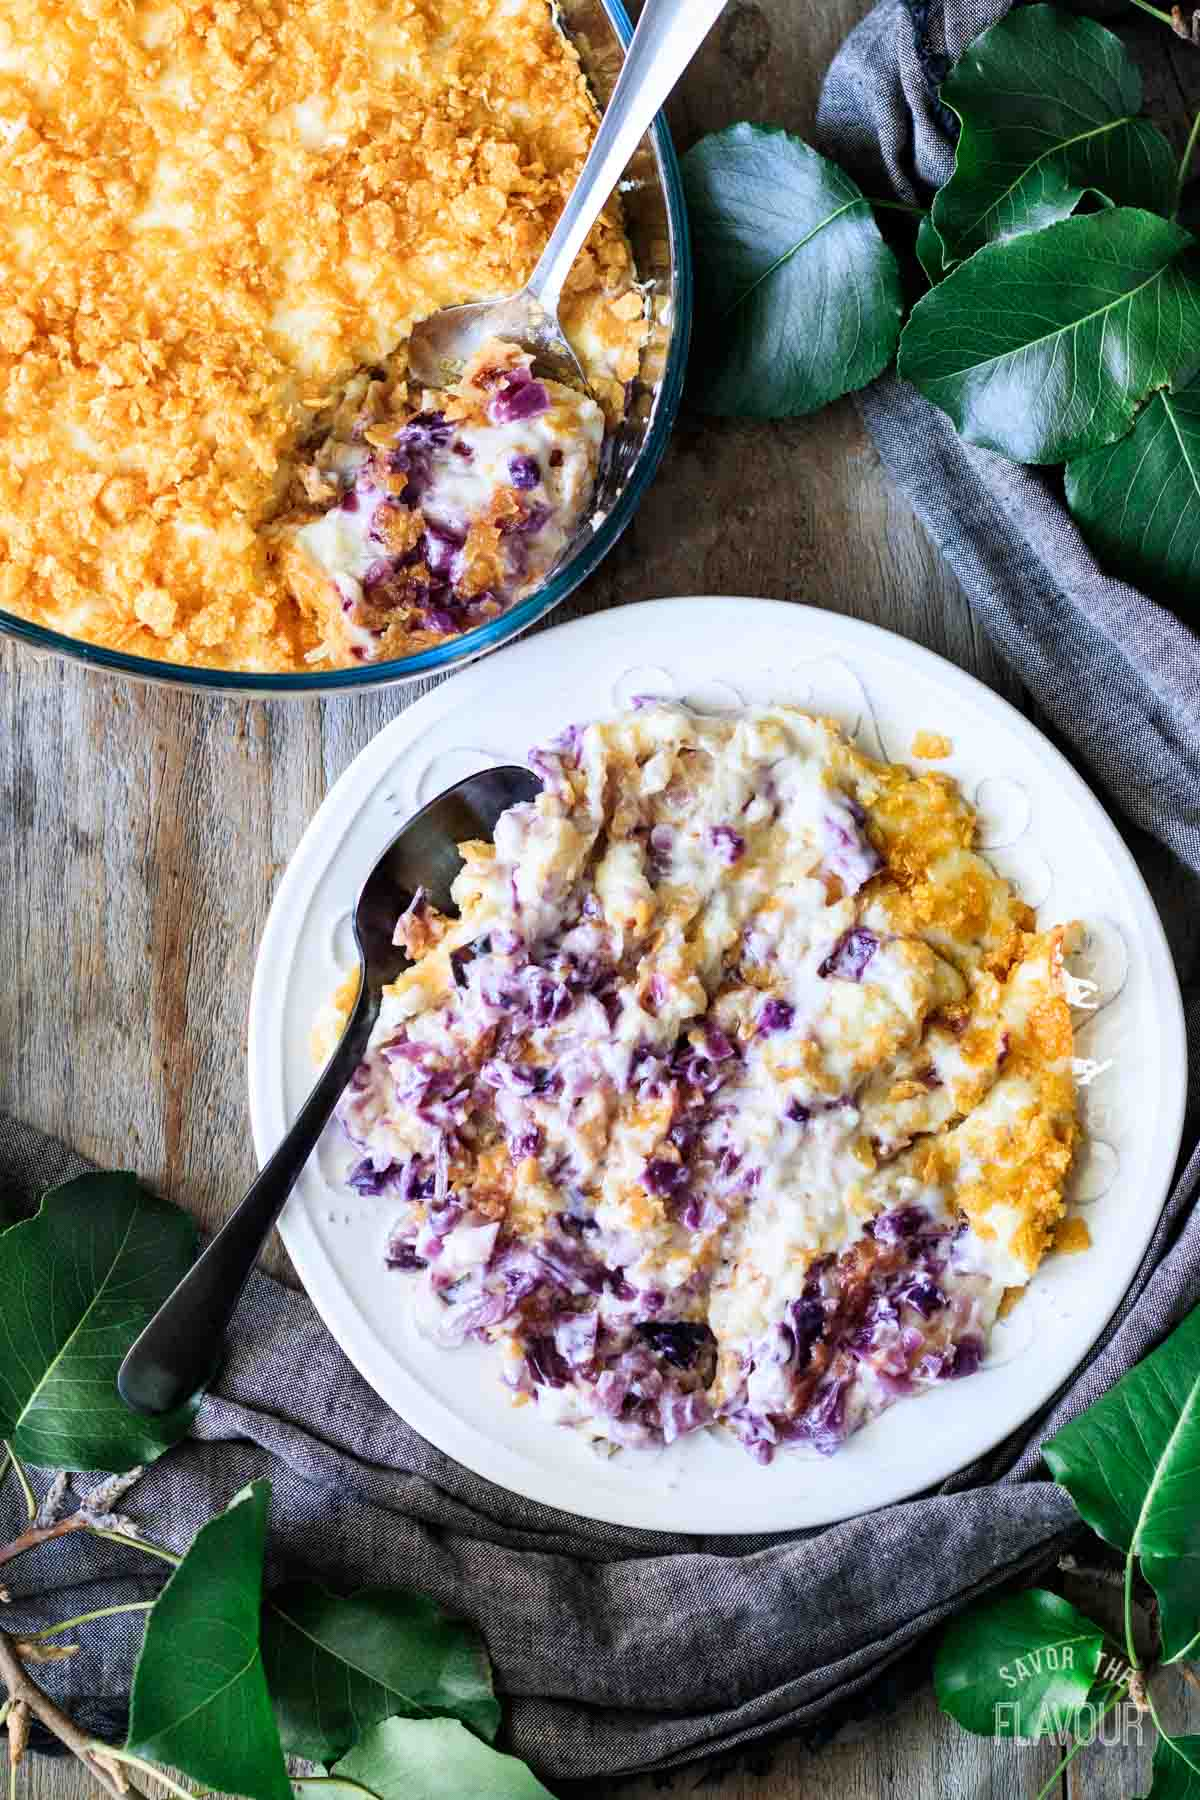 plate of cabbage casserole with the casserole dish